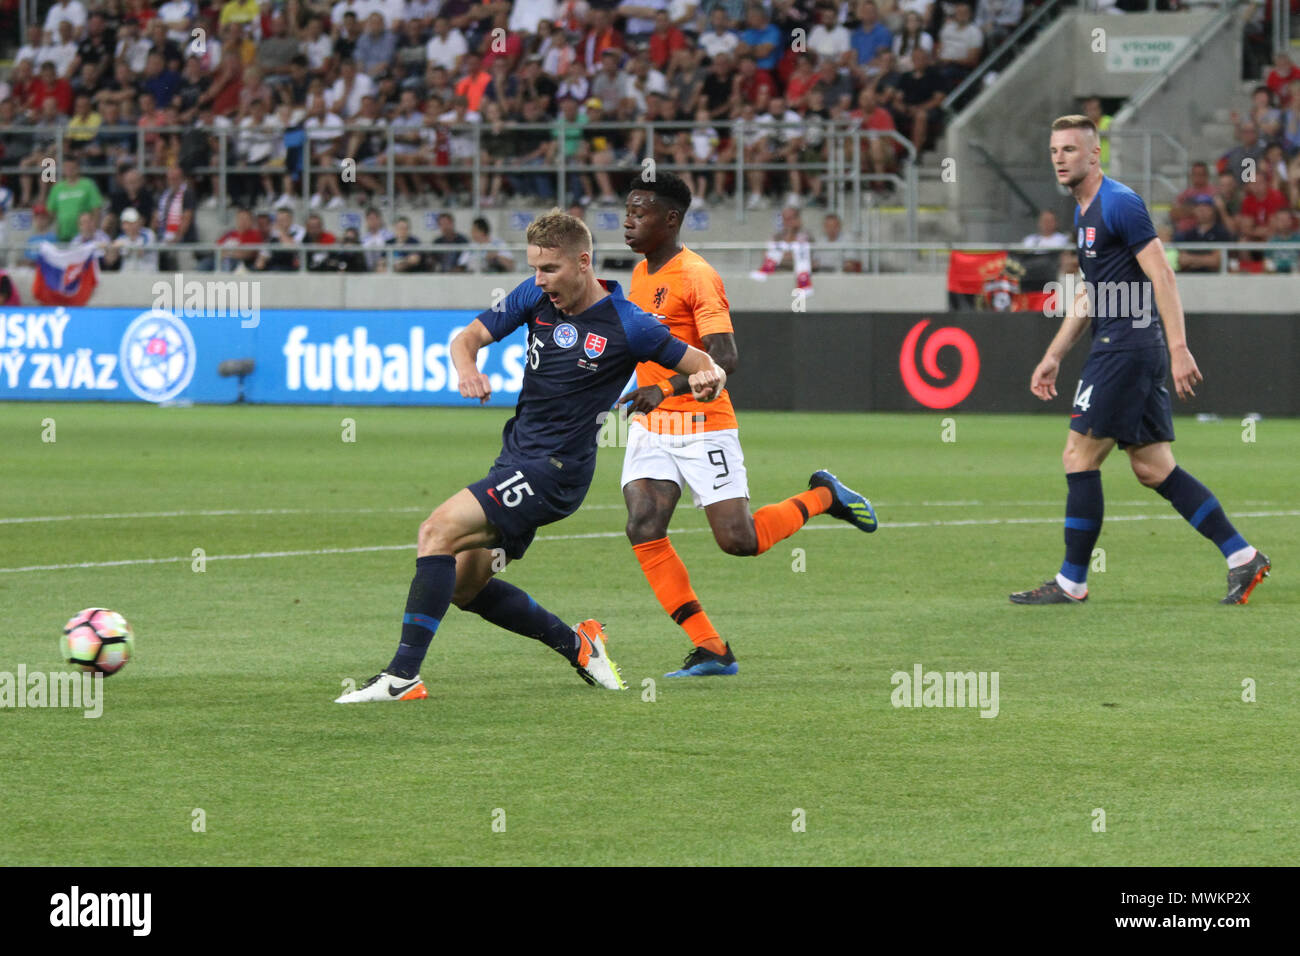 Trnava, Slovakia. 31st May, 2018. Tomas Hubocan (15) during the friendly football match between Slovakia and Netherlands (1 – 1). - Stock Image